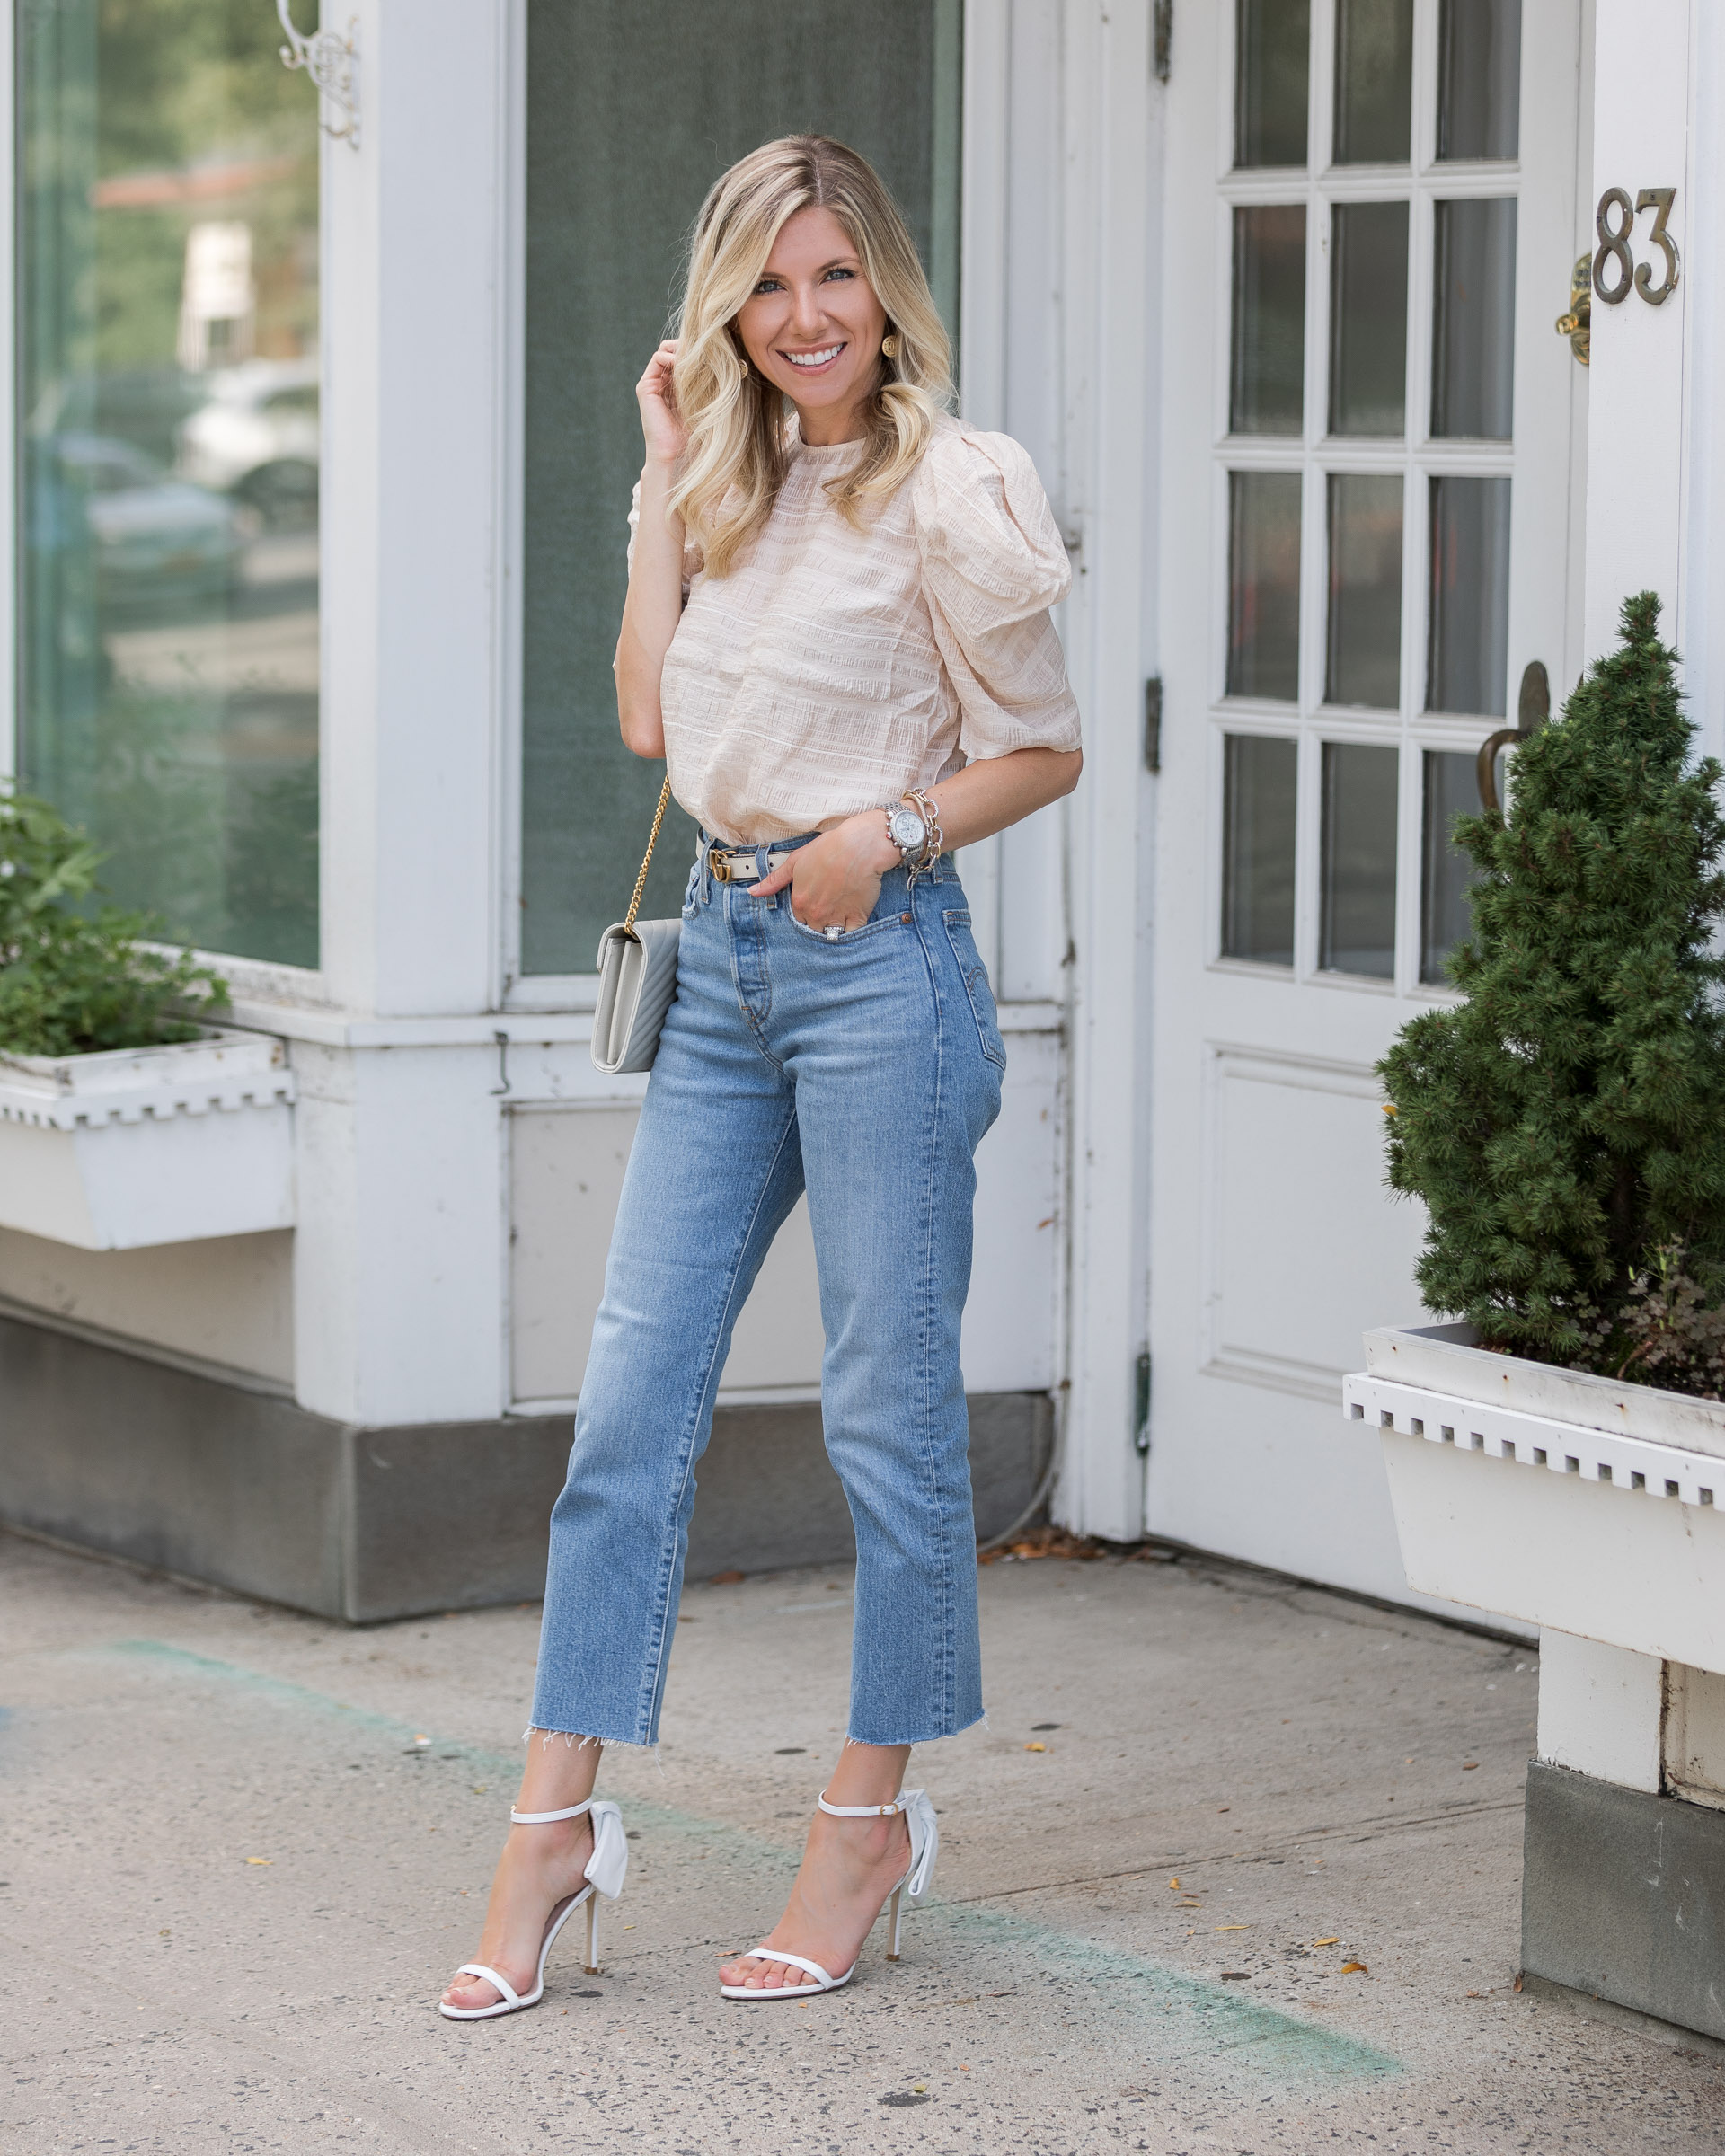 blush-puff-sleeve-top-from-express-the-glamorous-gal